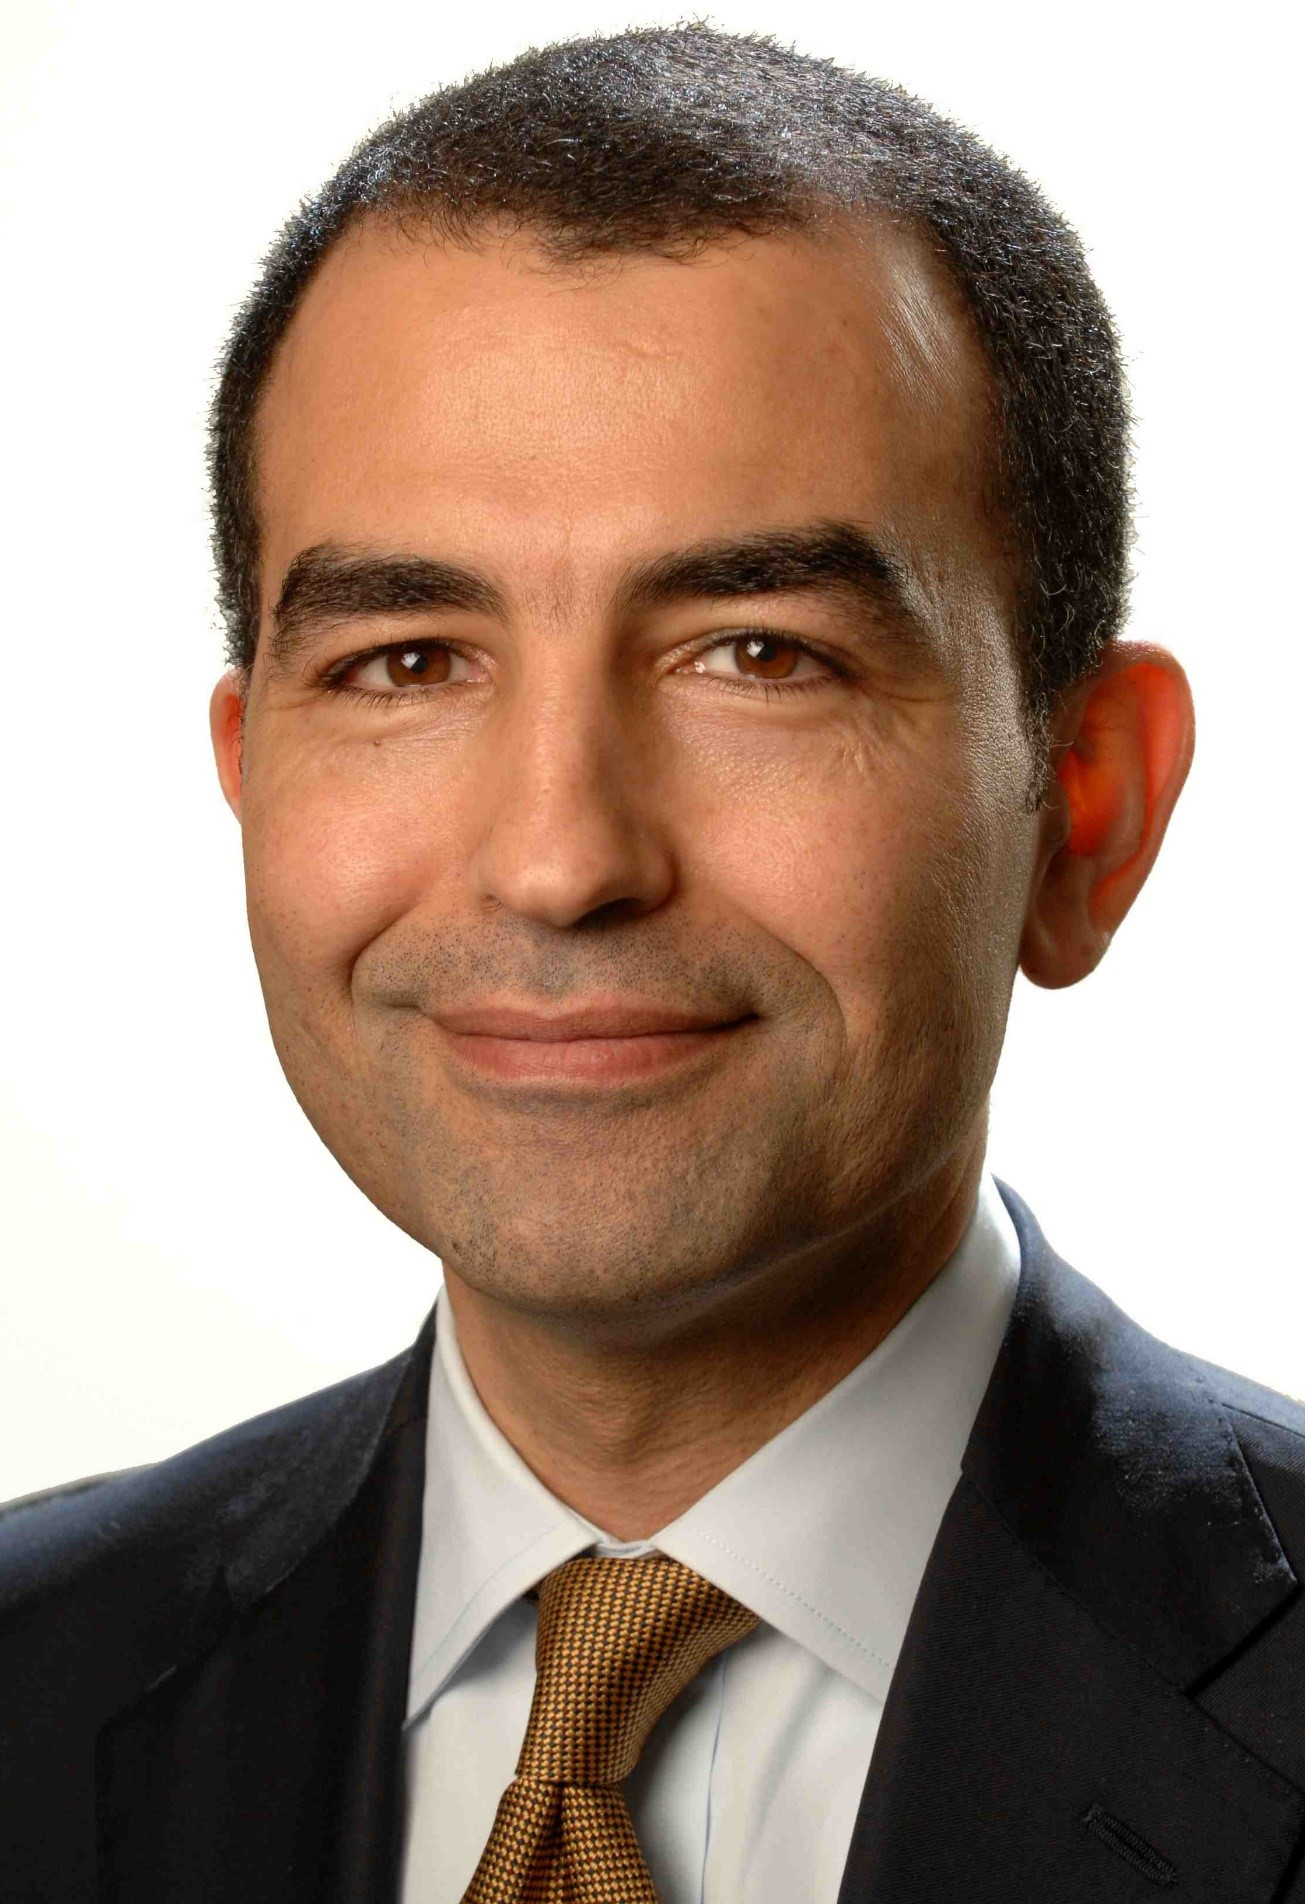 Profile Photo for Amr Moursi, D.D.S., Ph.D.